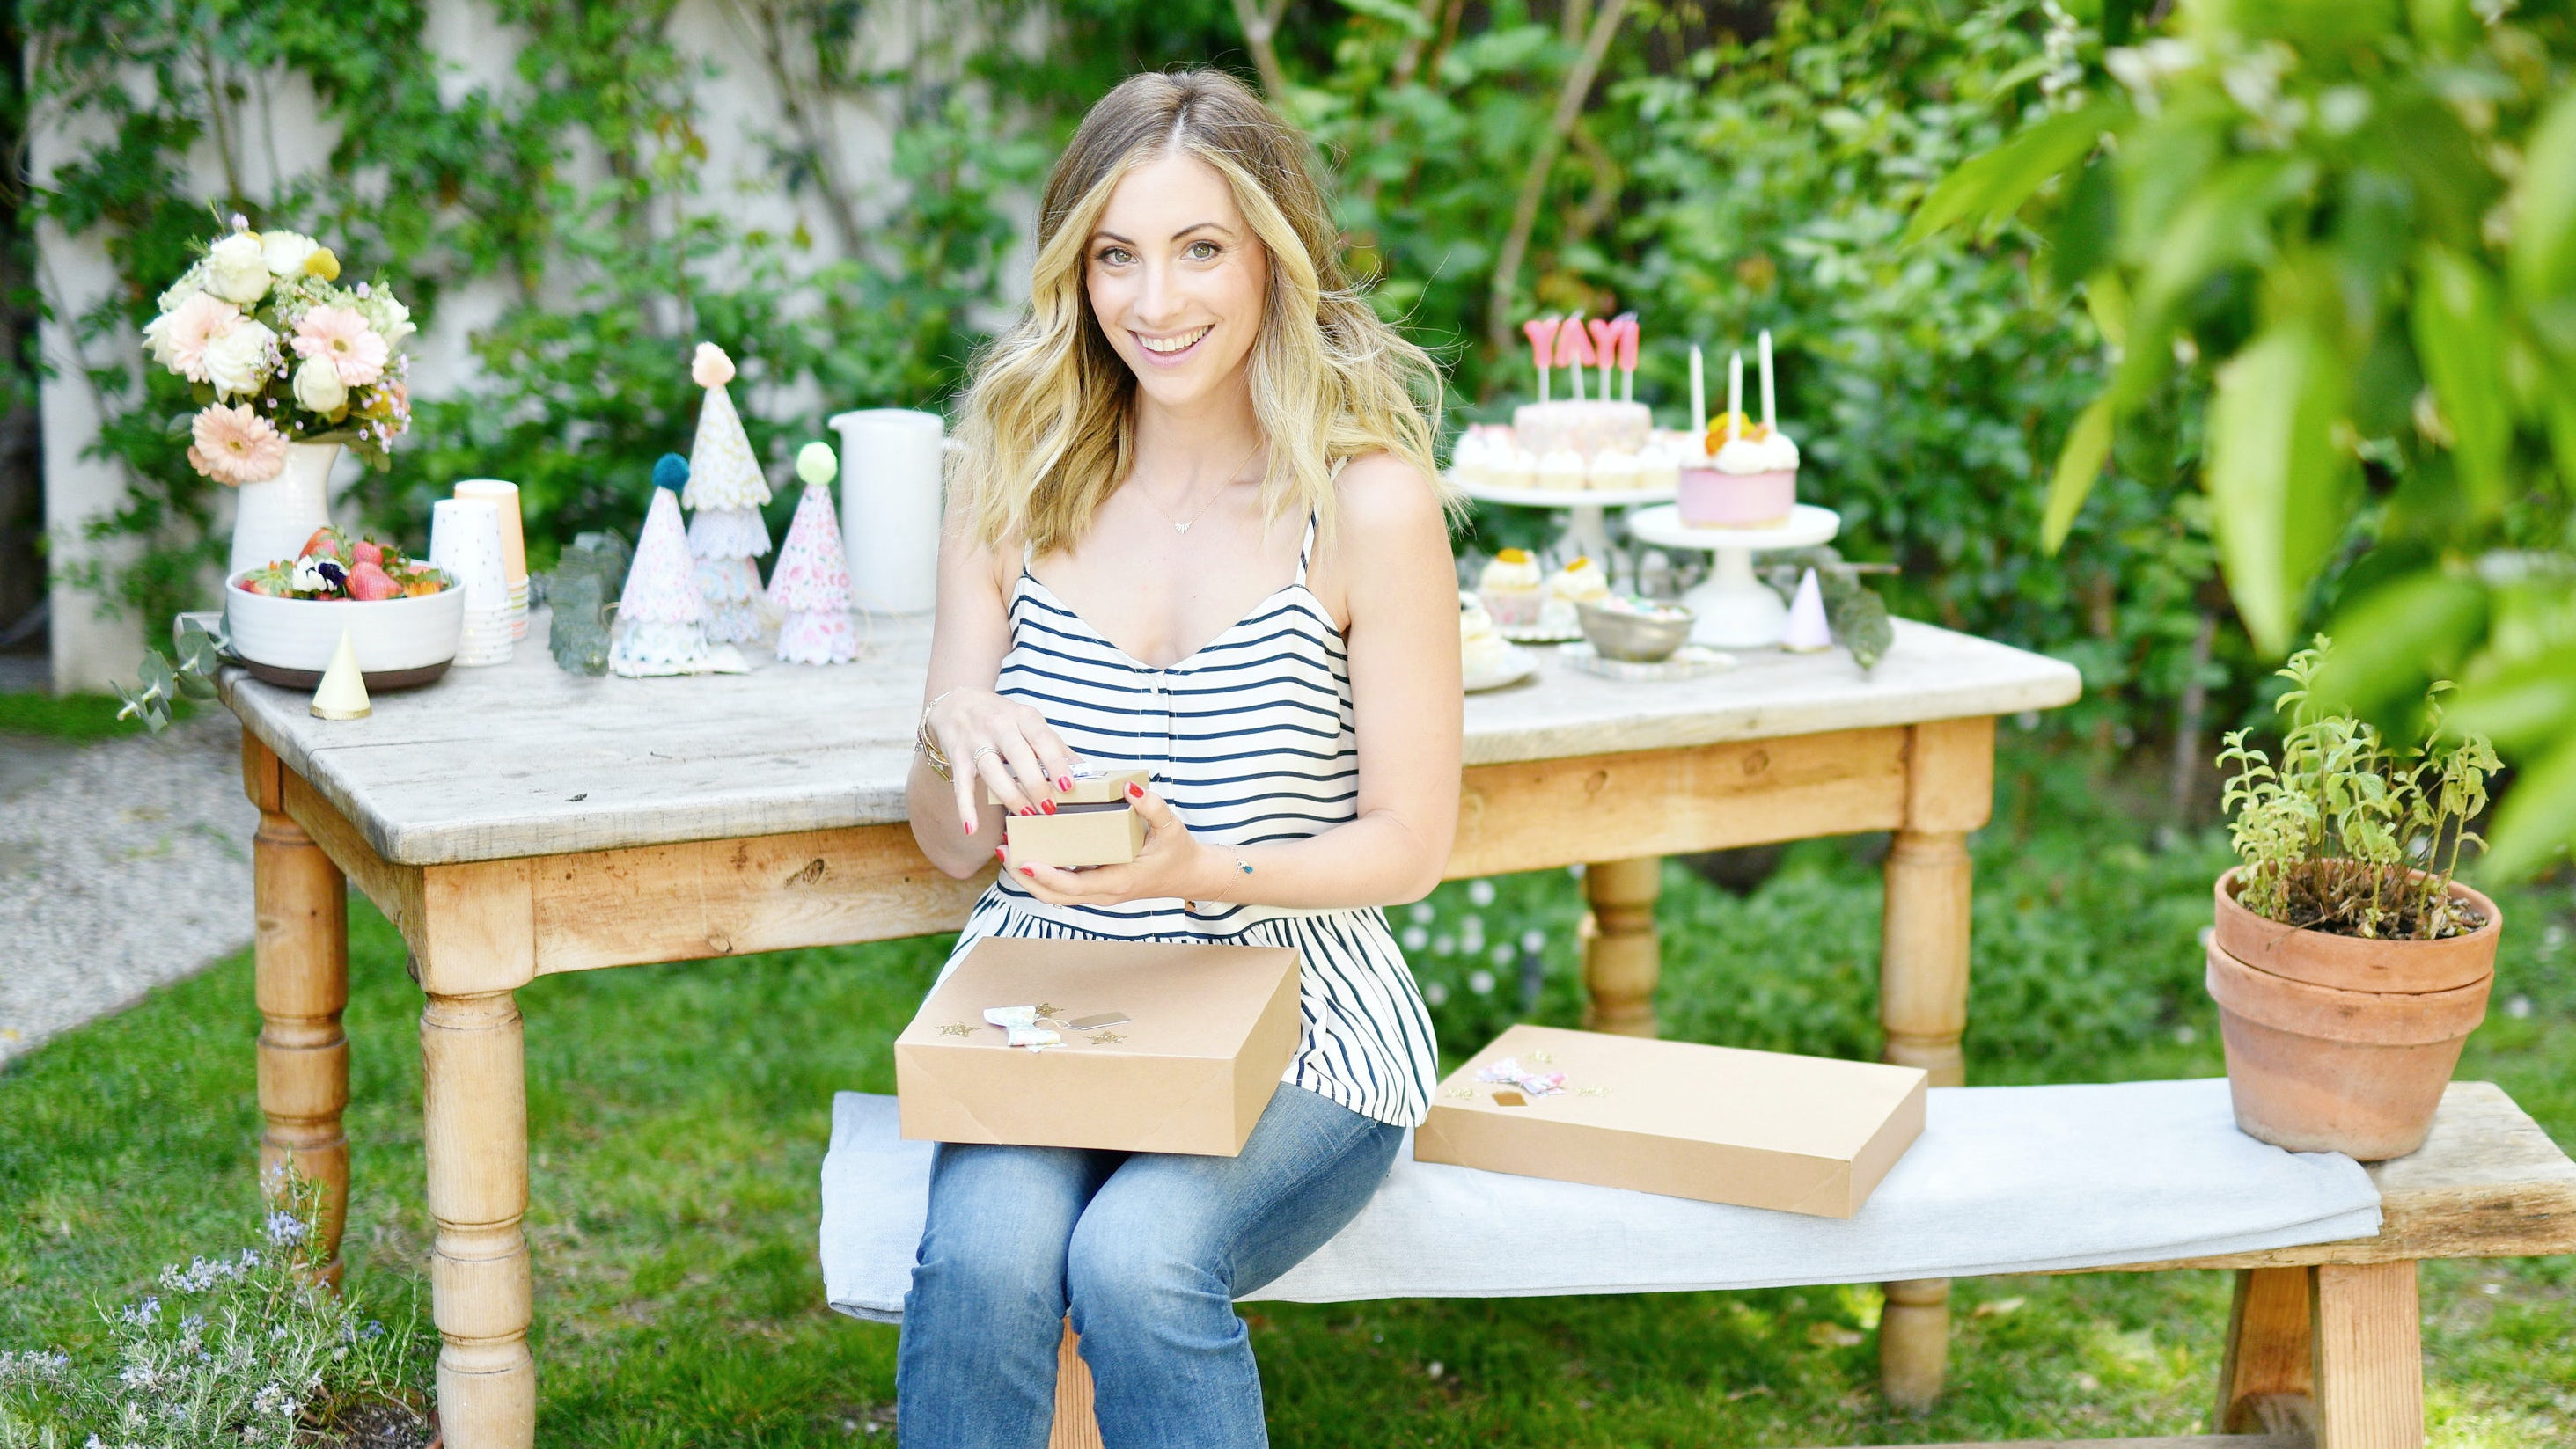 Emily Schuman of Cupcakes & Cashmere | Source: Courtesy